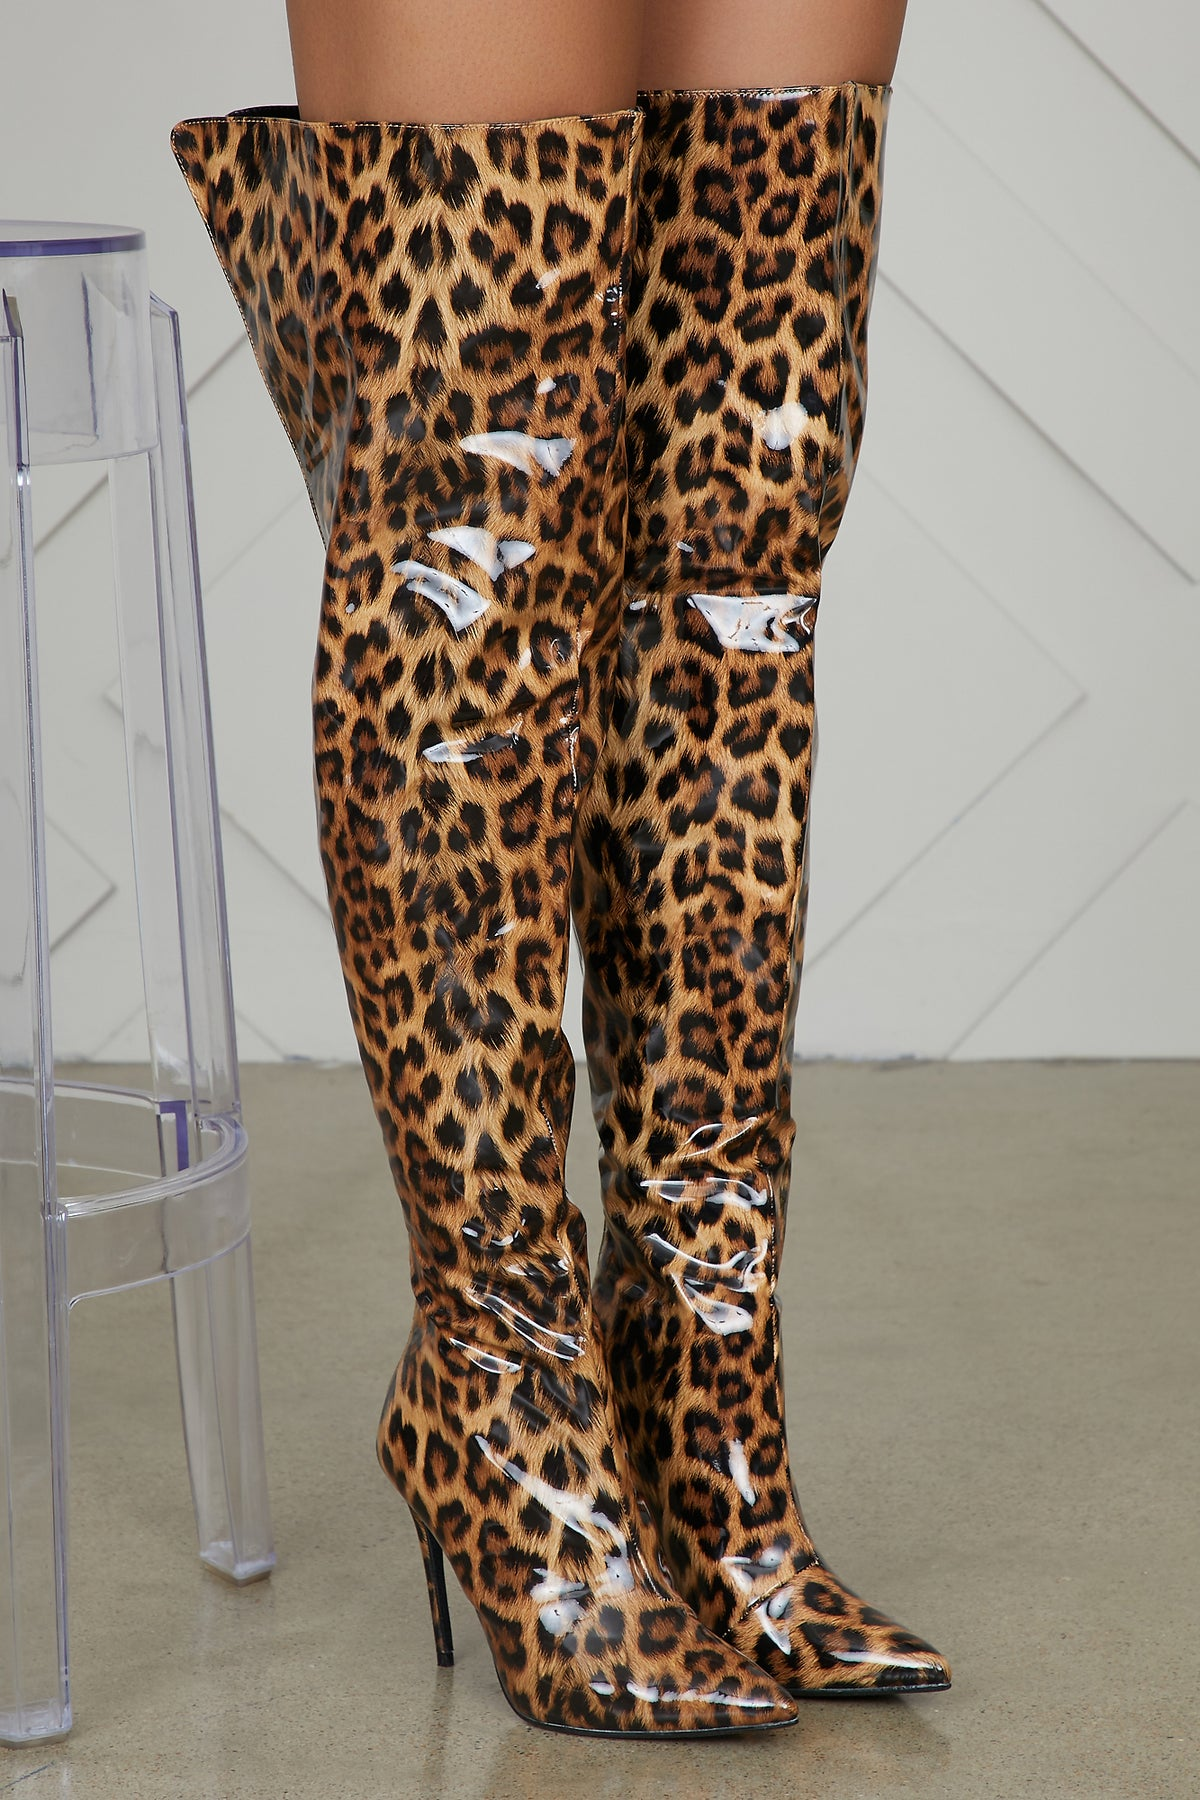 Patent Leather Thigh High Leopard Boots- FINAL SALE